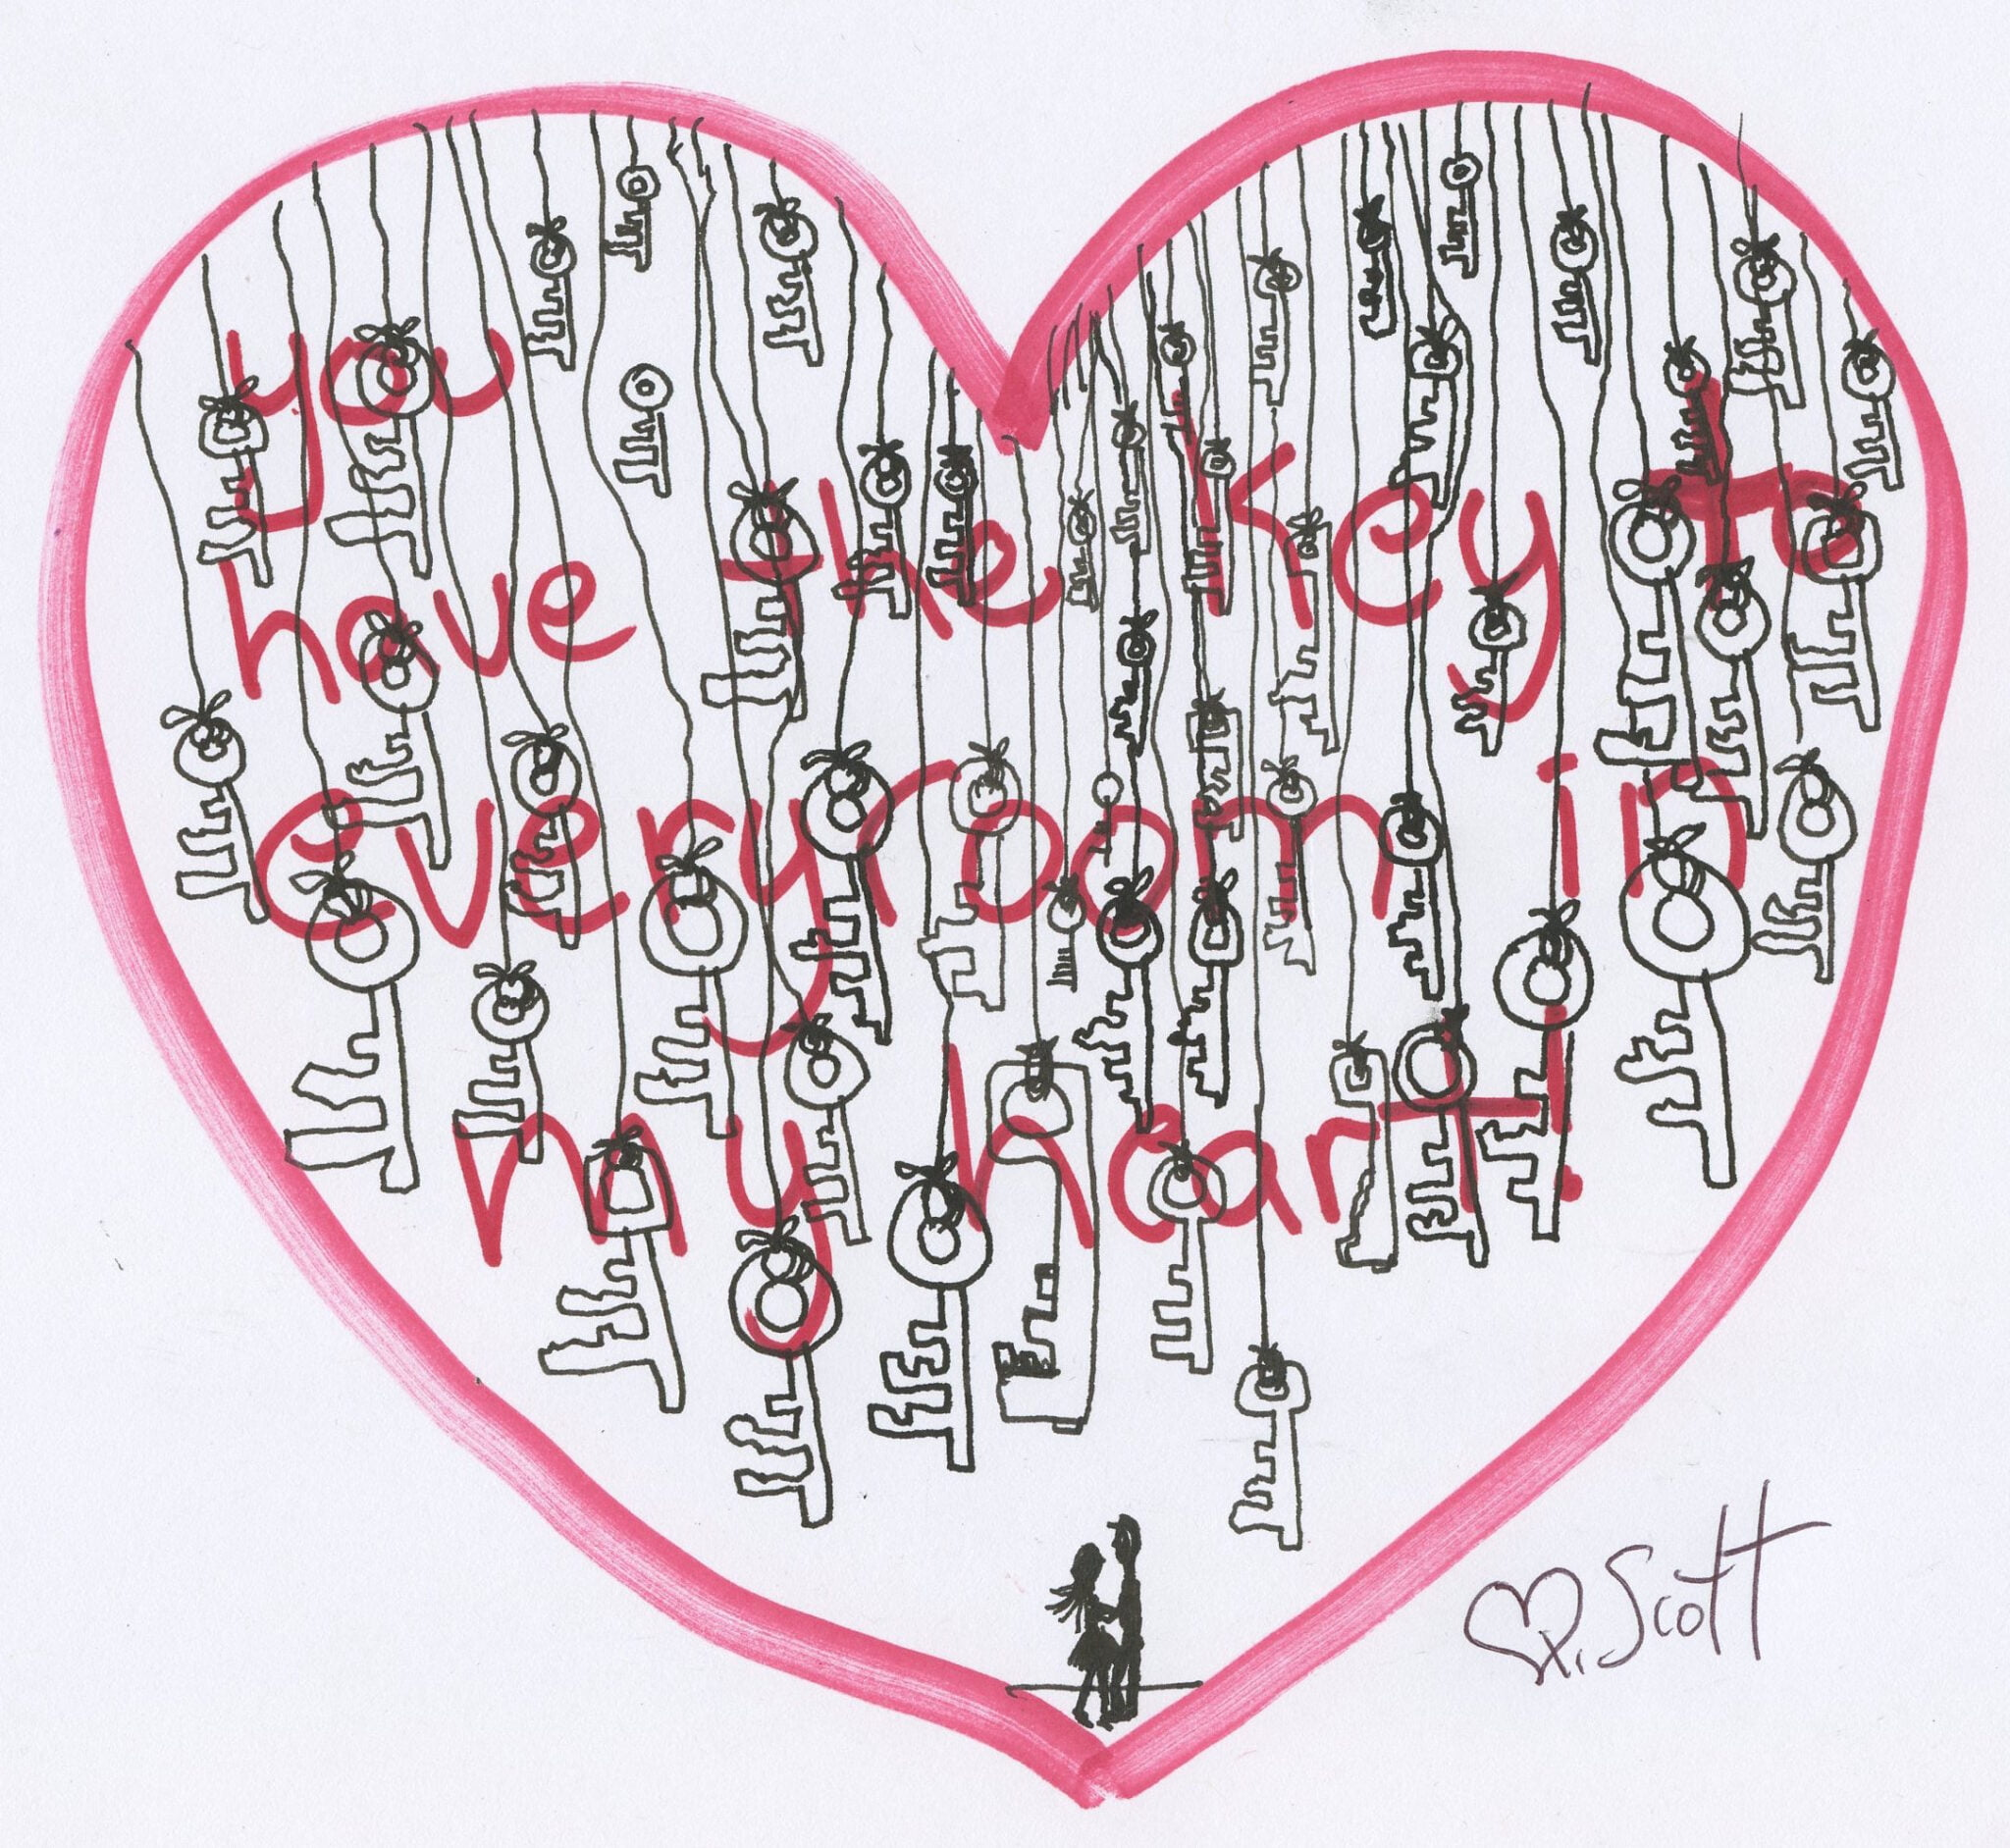 You have the key to every room in my heart.